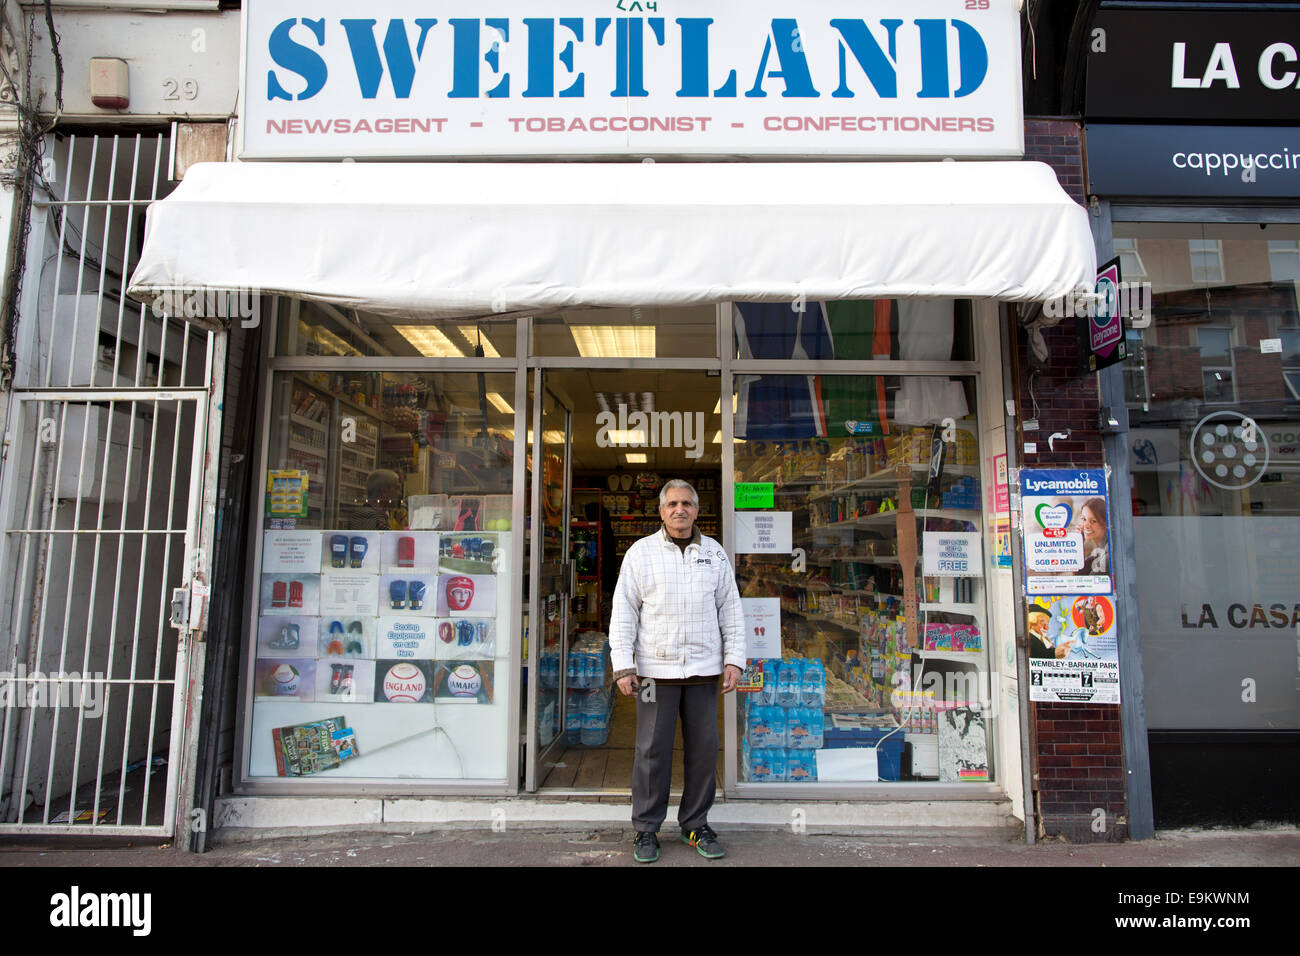 'Sweetland' confectioners, Harlesden, Northwest, London, England, UKJ - Stock Image